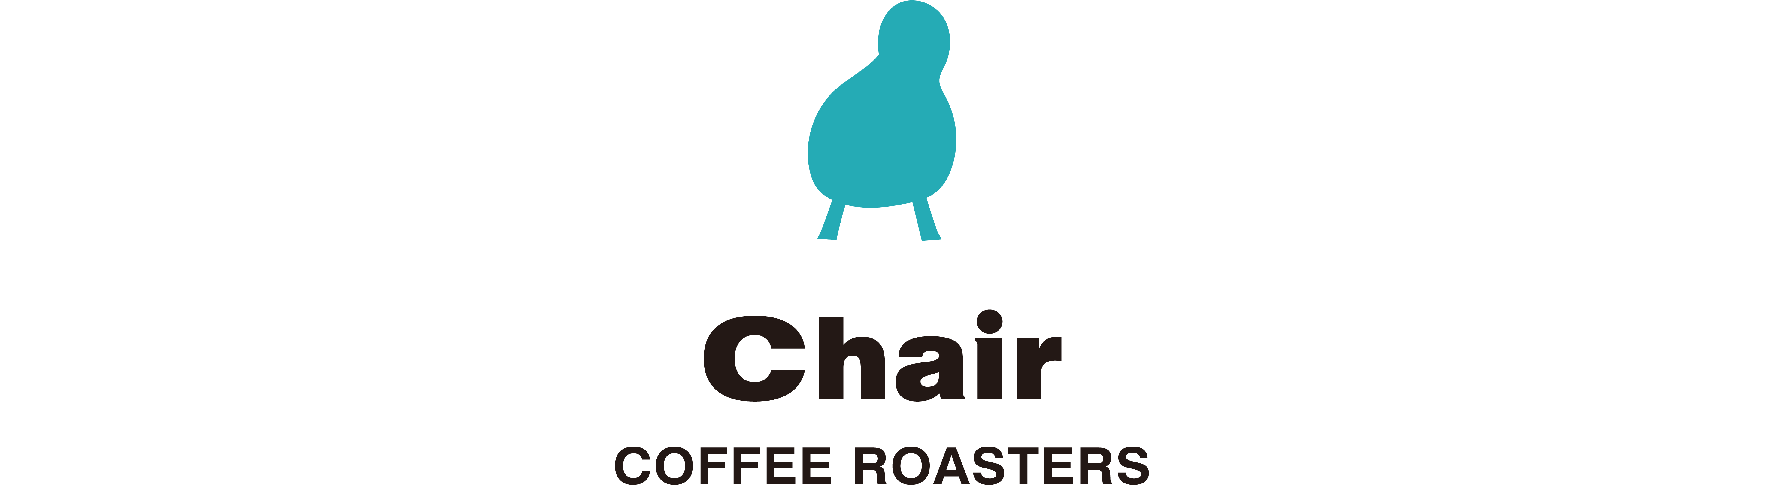 Chair COFFEE ROASTERS